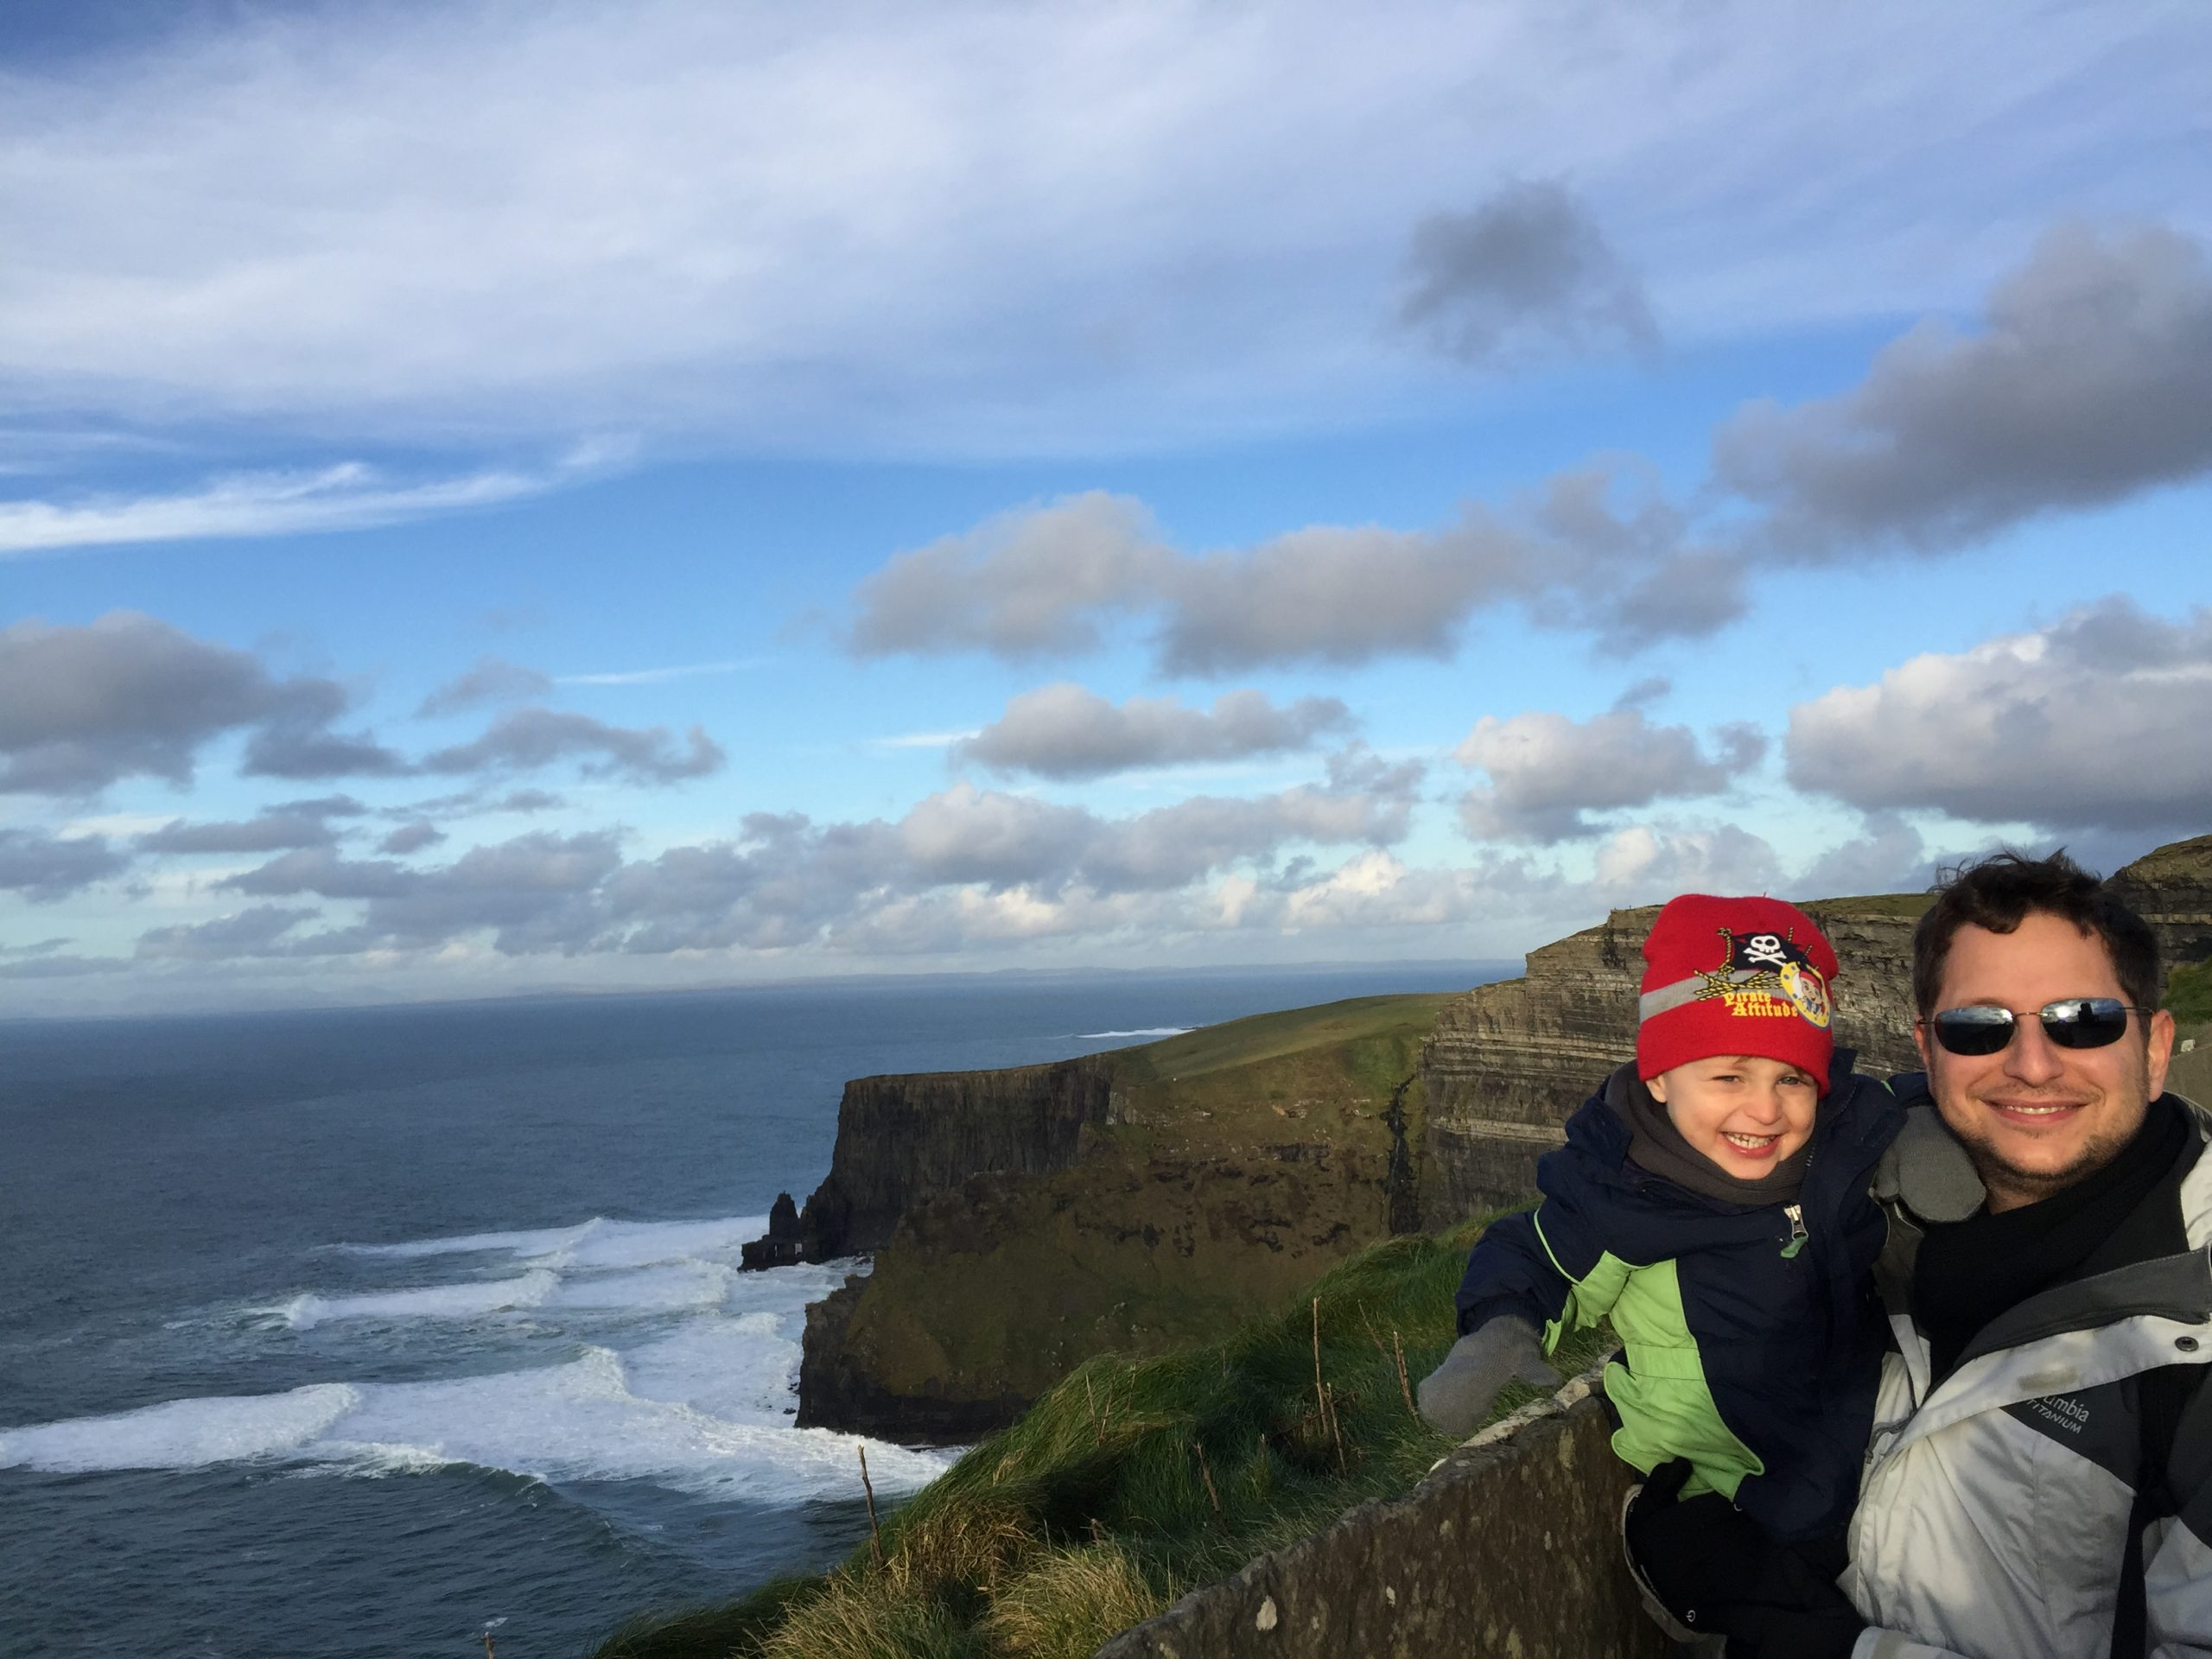 Father and son at the Cliffs of Moher, Irelandof Mo